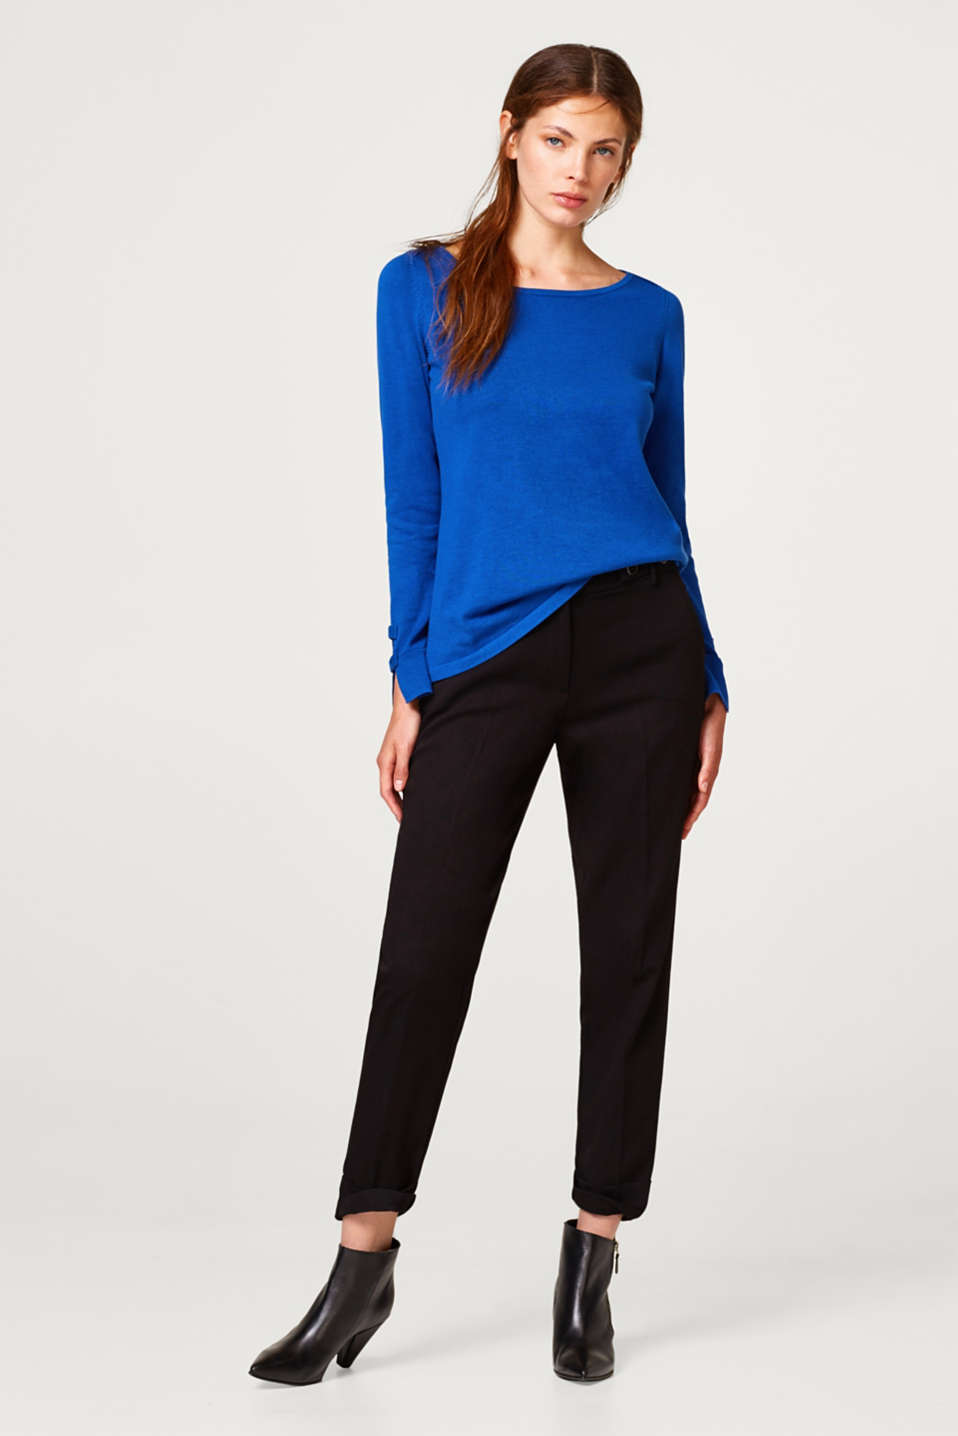 Fine knit jumper with a bateau-neckline